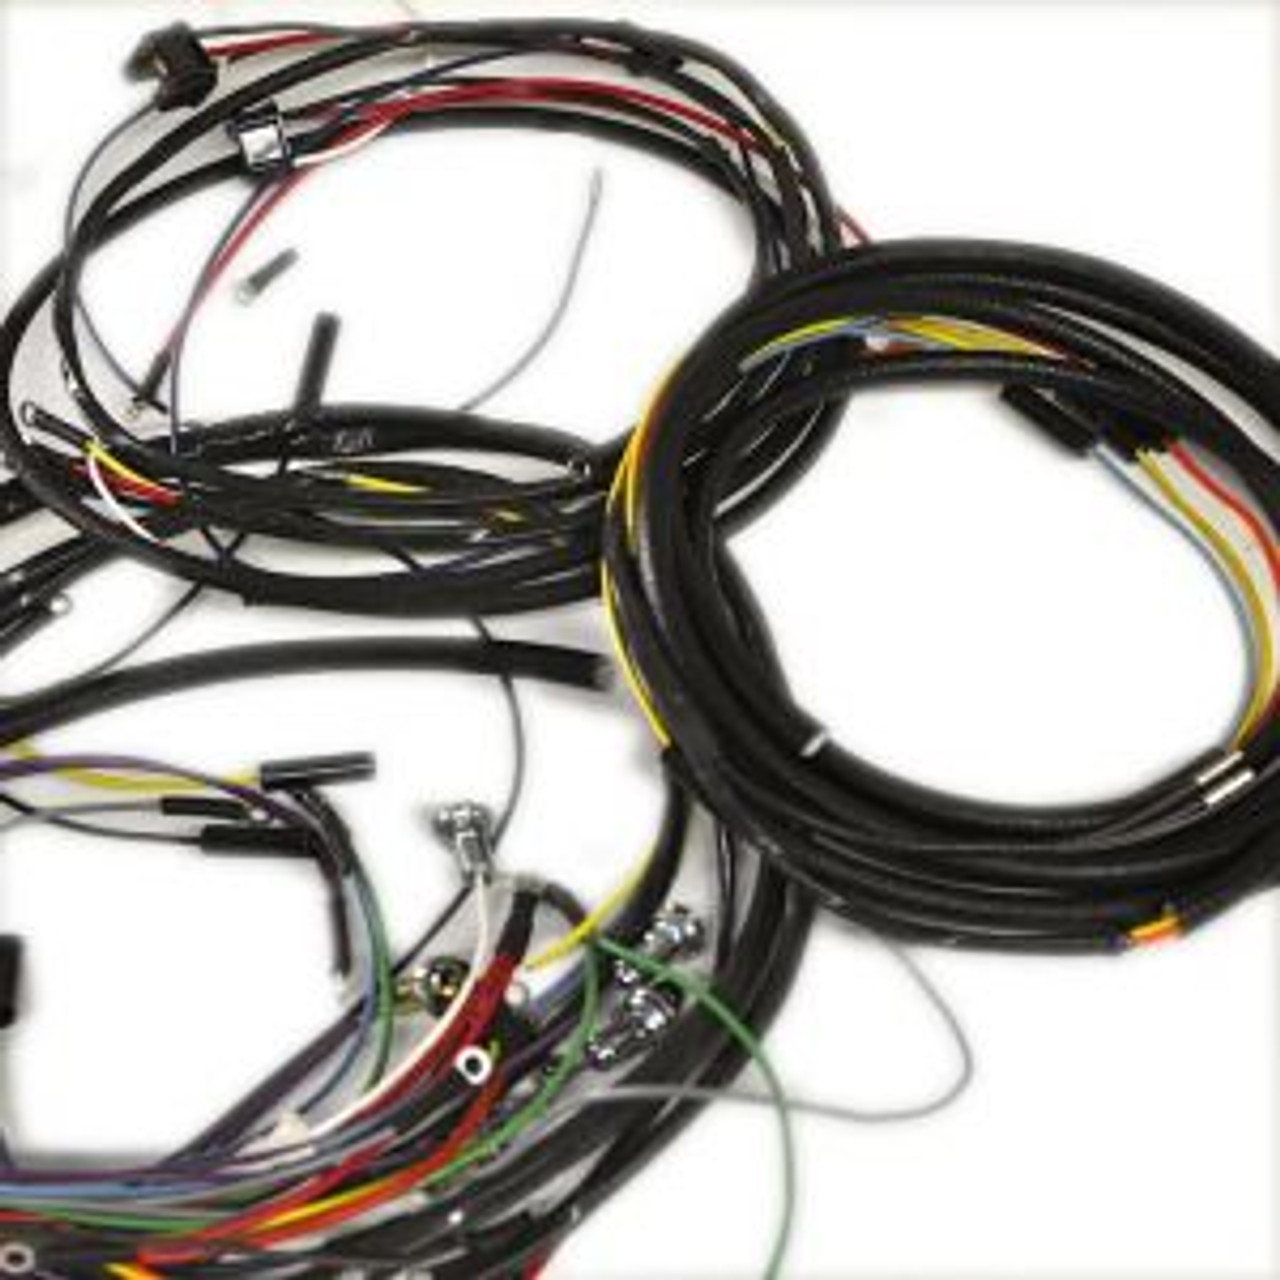 Jeep Transmission Wiring Harness on jeep grand cherokee transmission solenoid, jeep commander transmission problems, jeep transmission control module, jeep transmission manual, transfer case wiring harness, jeep alternator, jeep 42re transmission diagram, jeep trailer hitch, jeep transmission parts diagram, jeep grand cherokee transmission diagram, jeep transmission oil pan, ford truck wiring harness, jeep transmission transfer case, jeep transmission valve body, jeep transmission cooler lines,